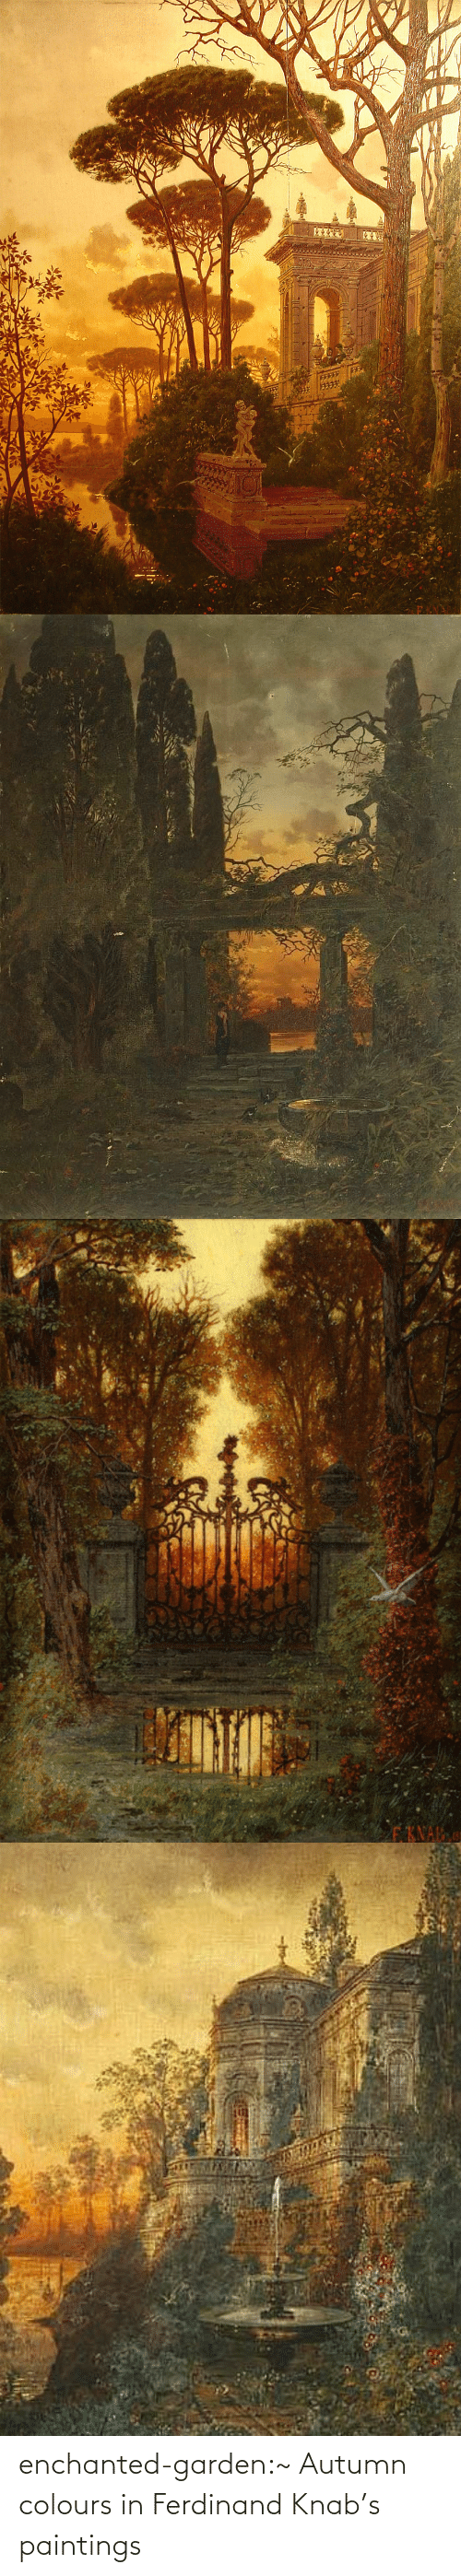 Paintings, Tumblr, and Blog: enchanted-garden:~ Autumn colours in Ferdinand Knab's paintings